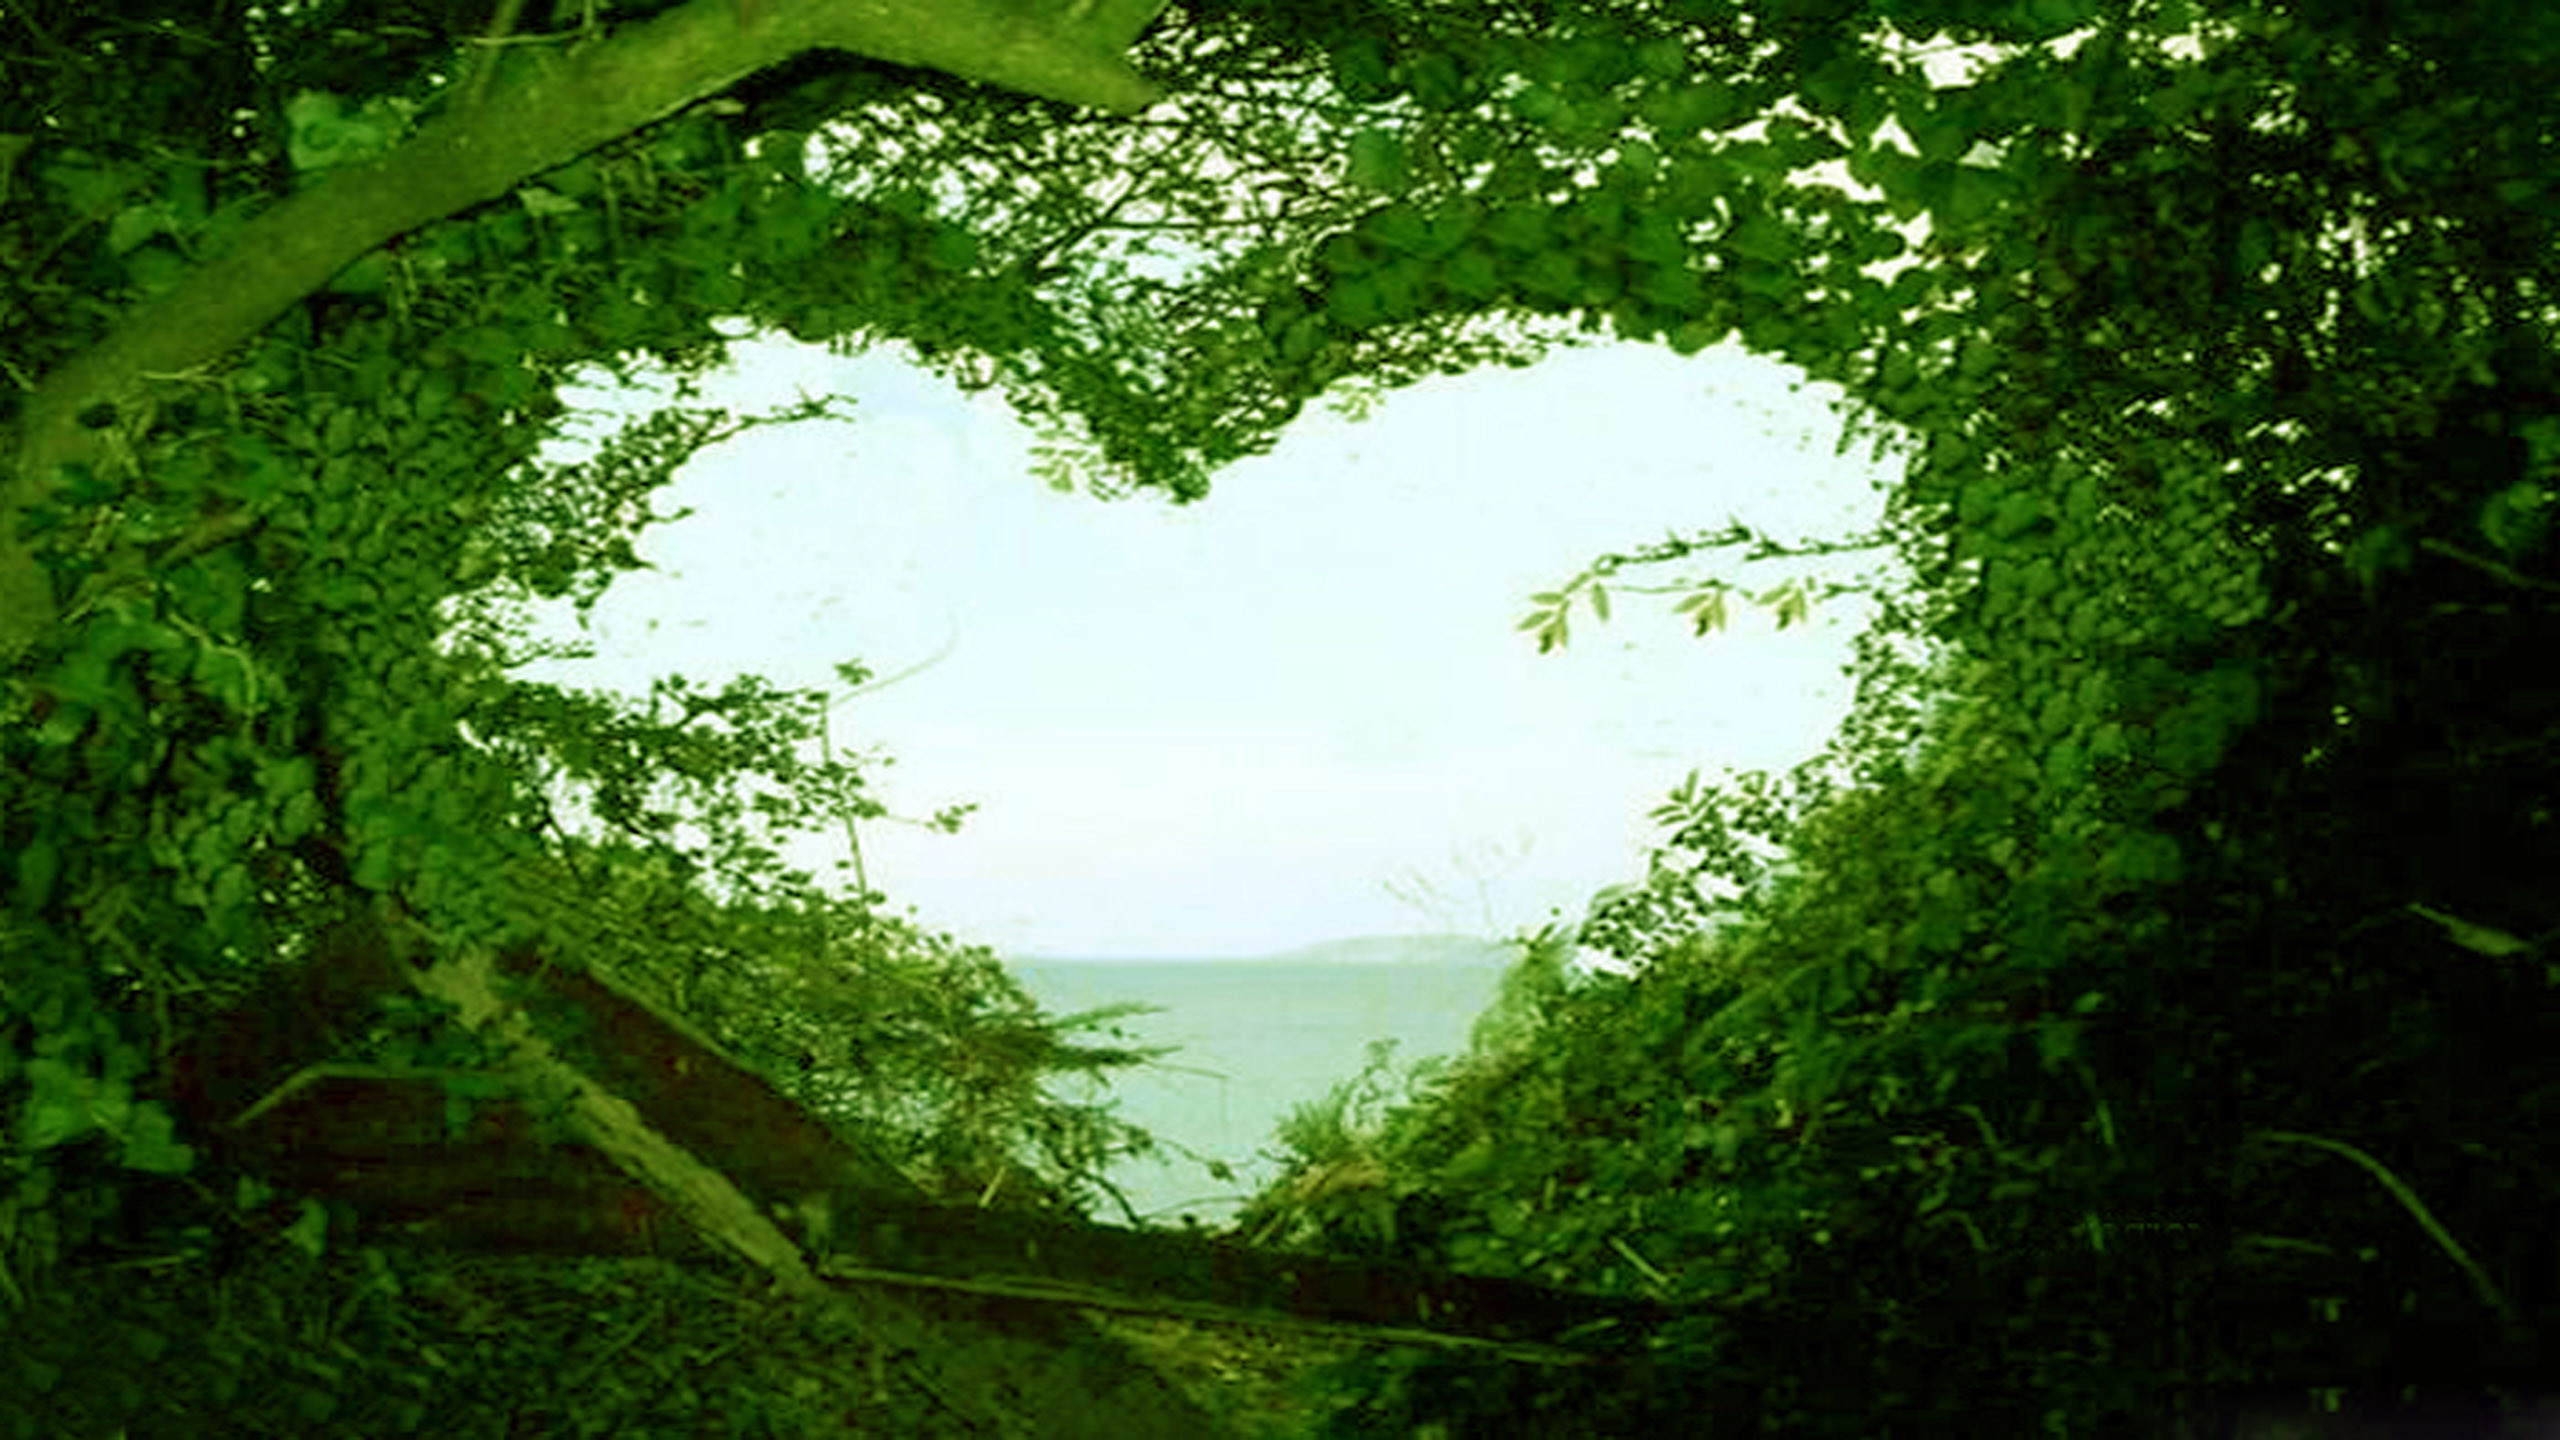 Love nature wallpapers 60 background pictures - Wallpaper stills ...